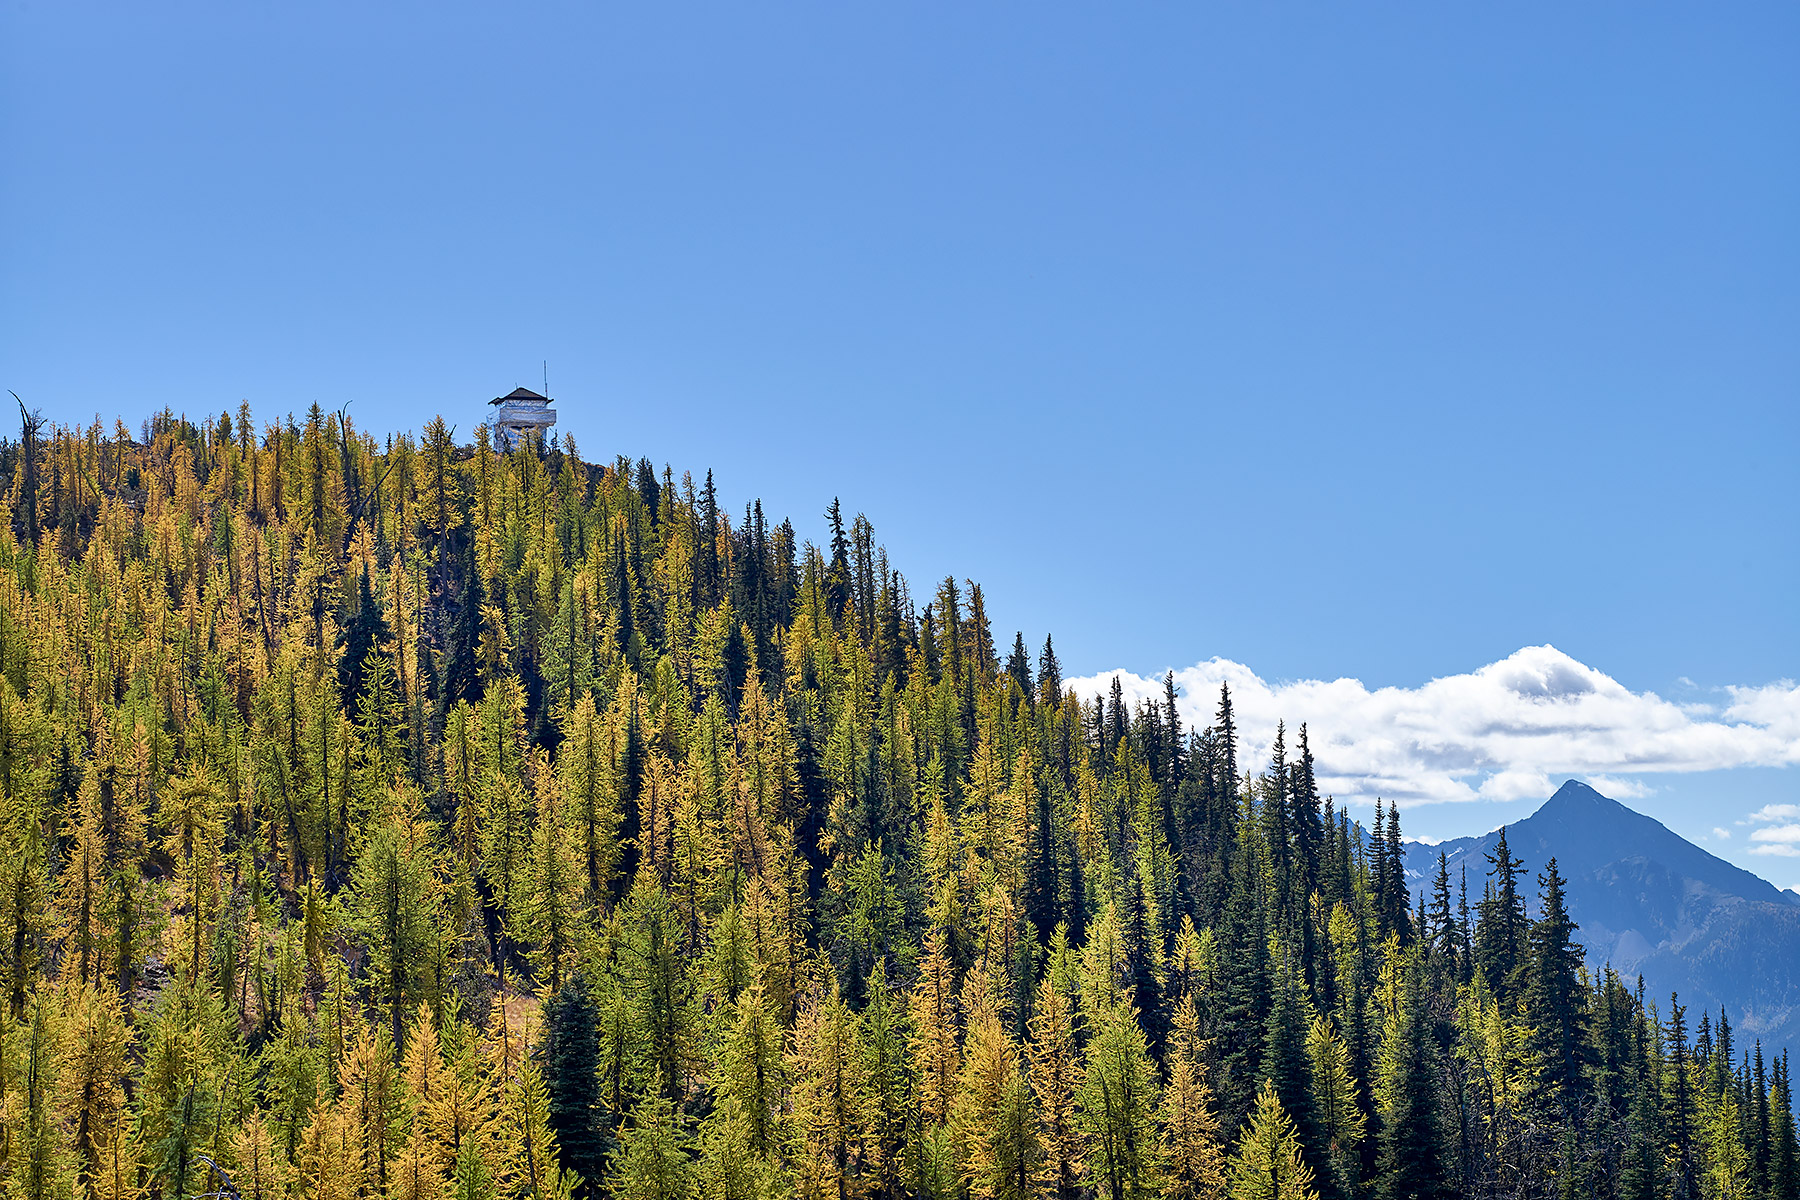 Goat Peak Fire Lookout from trail ©johncameron.ca